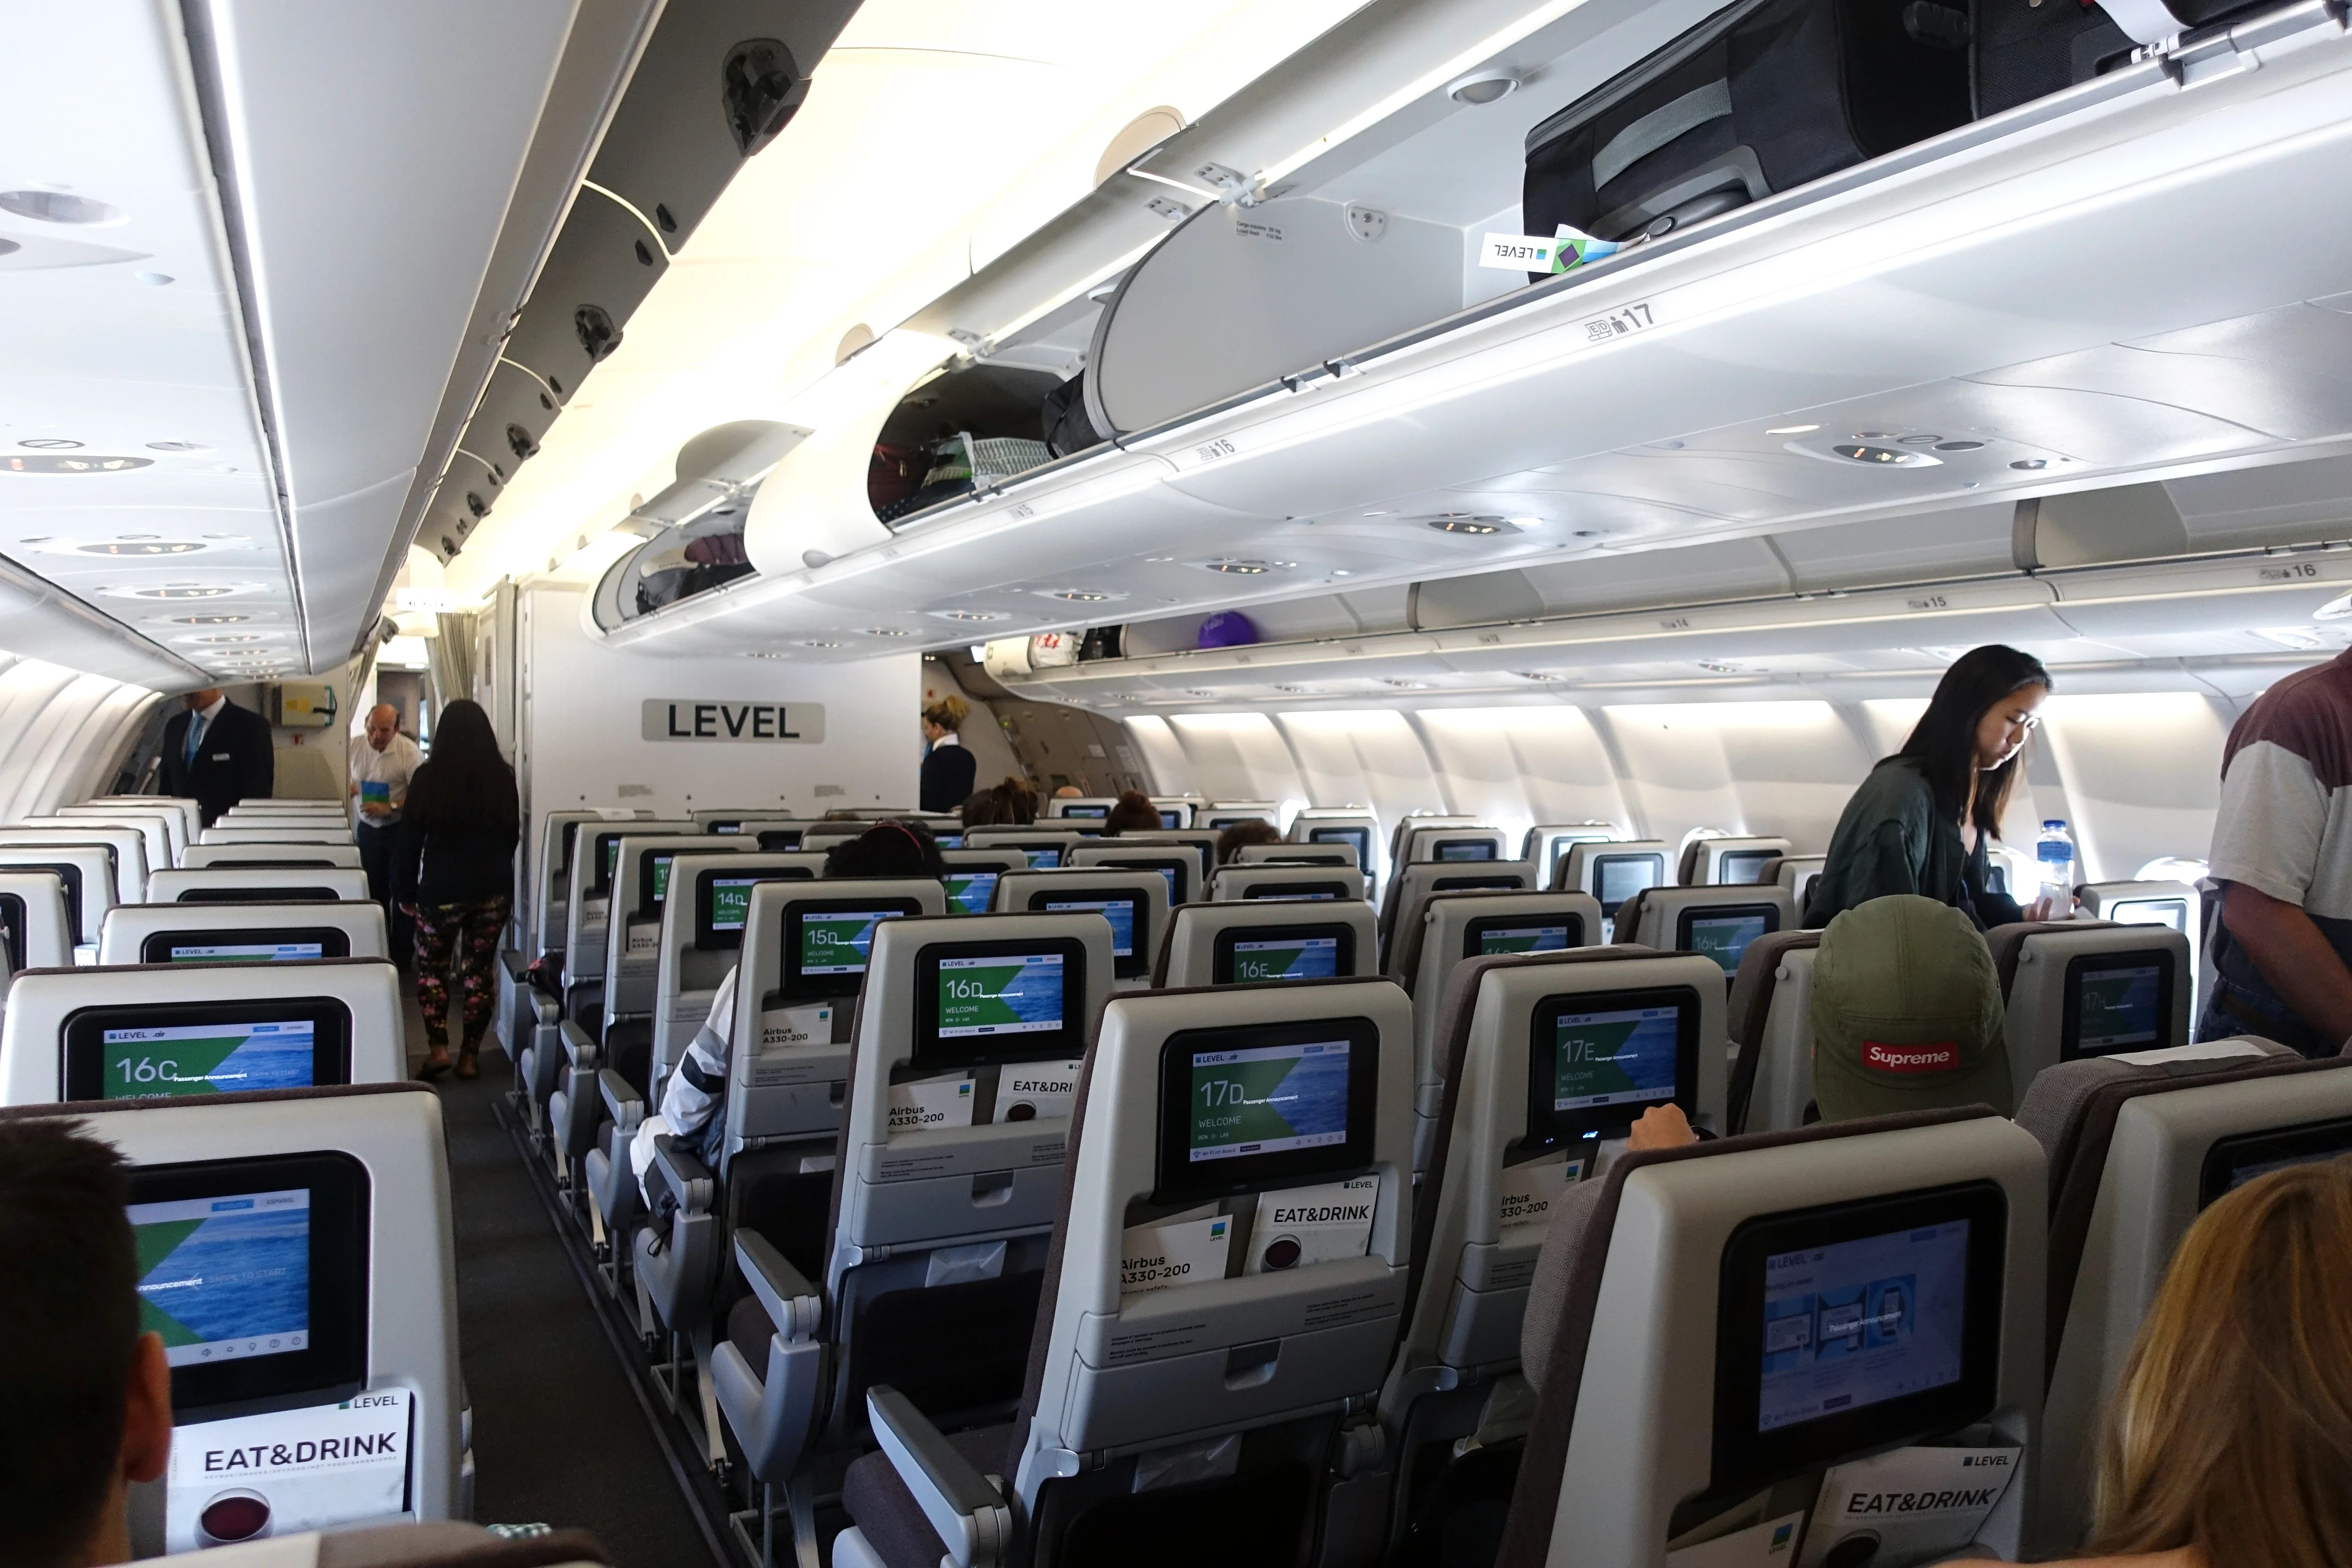 Earn American Airlines Miles Flying Low Cost Carrier Level